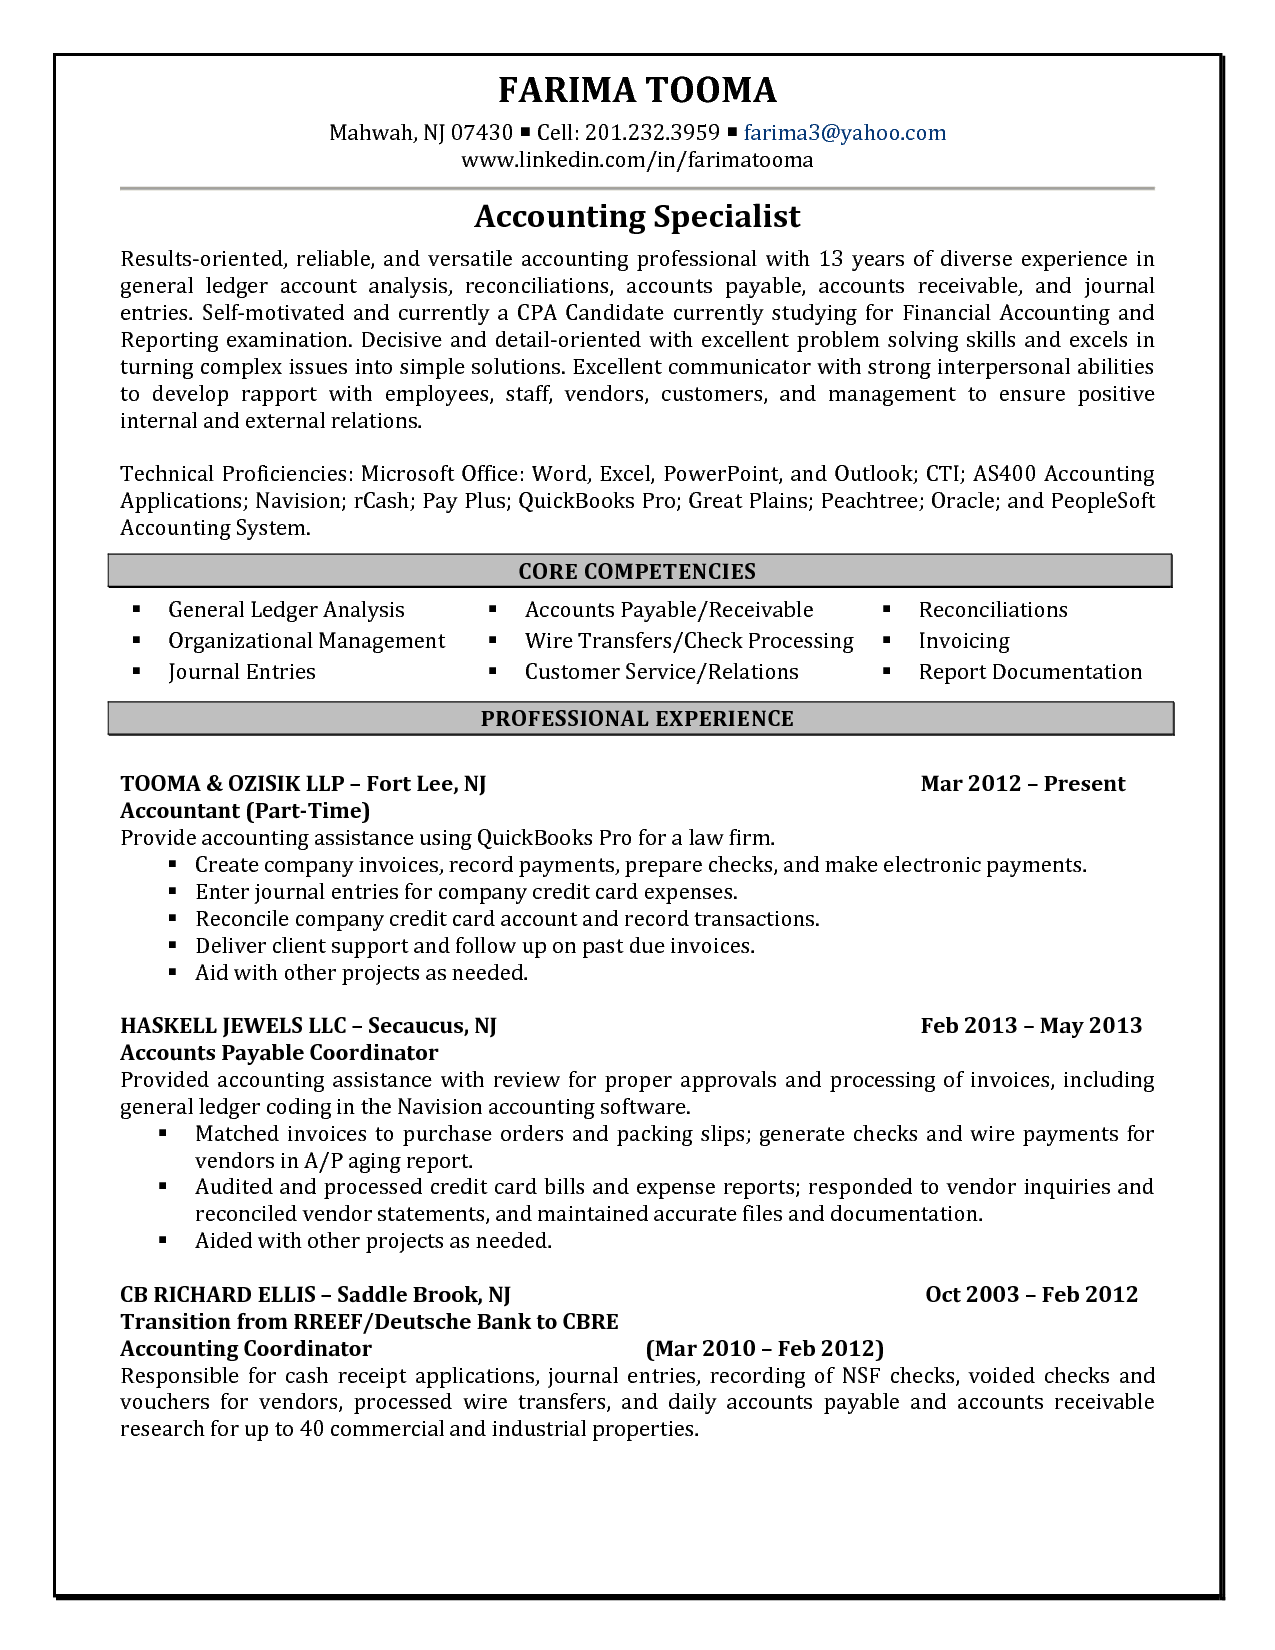 junior staff accountant resume gallery guide the perfect example of good for internship cv students with no experience publisher templates free